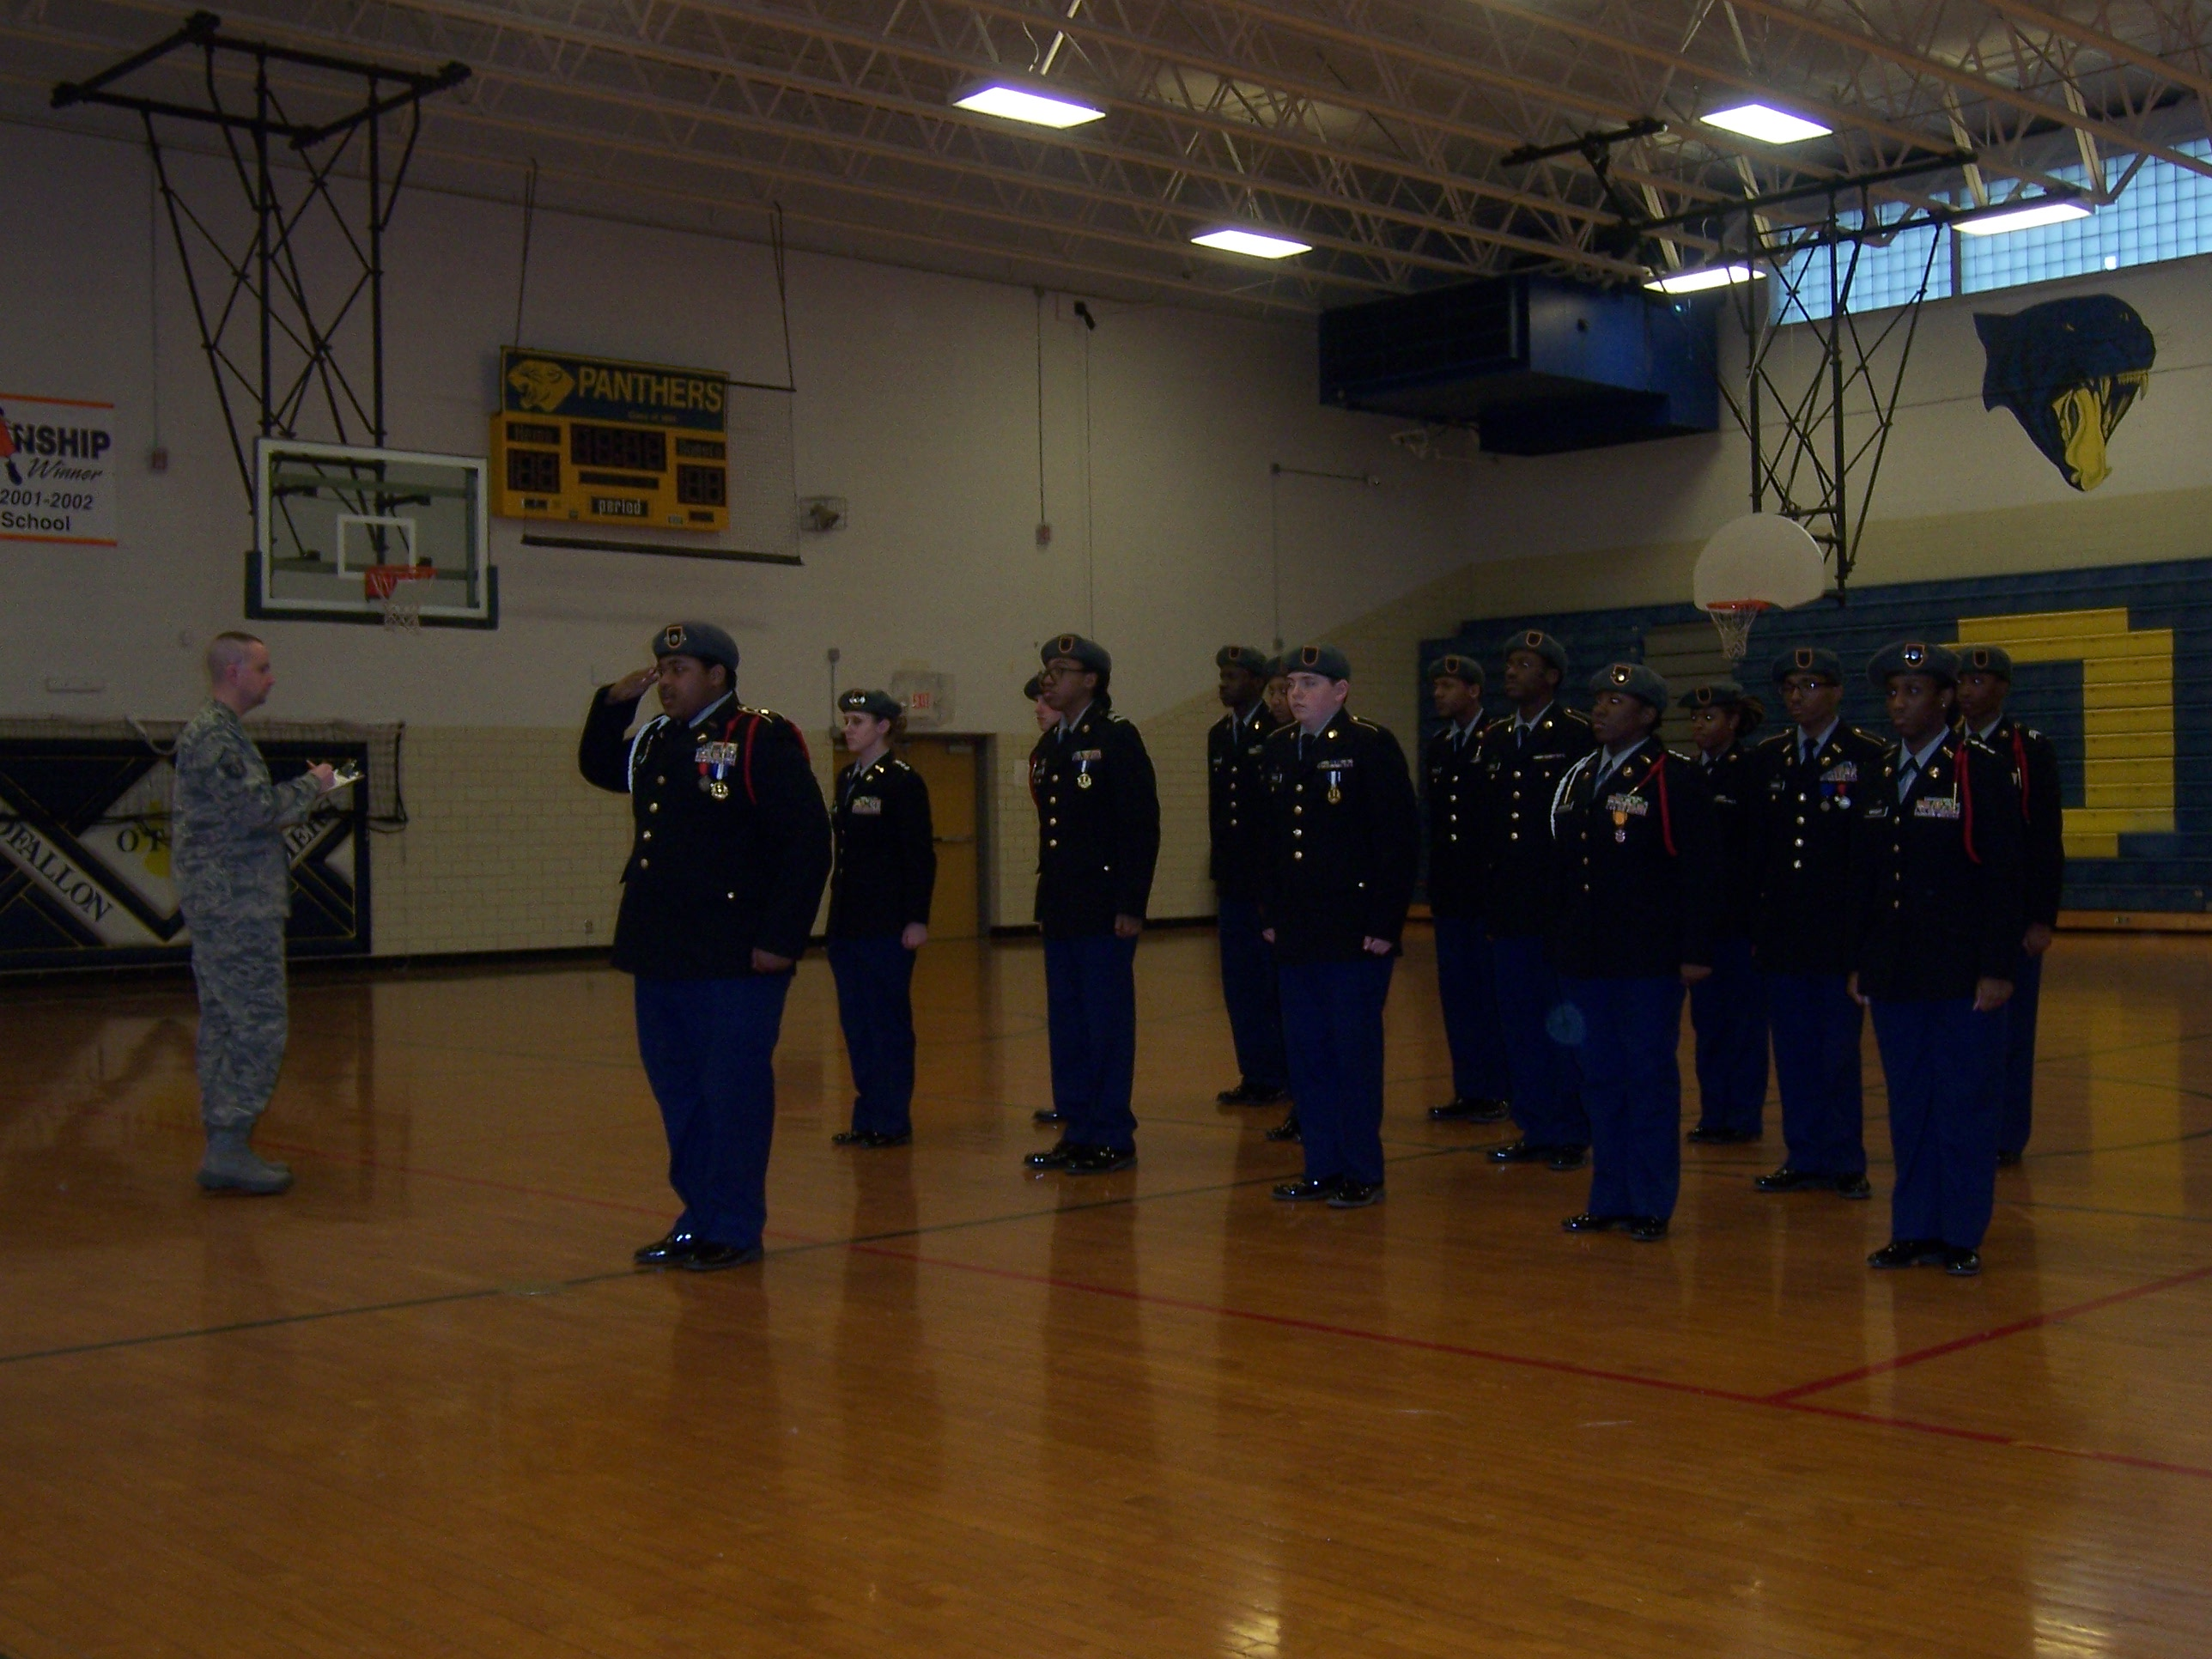 The Drill Team At They Meet